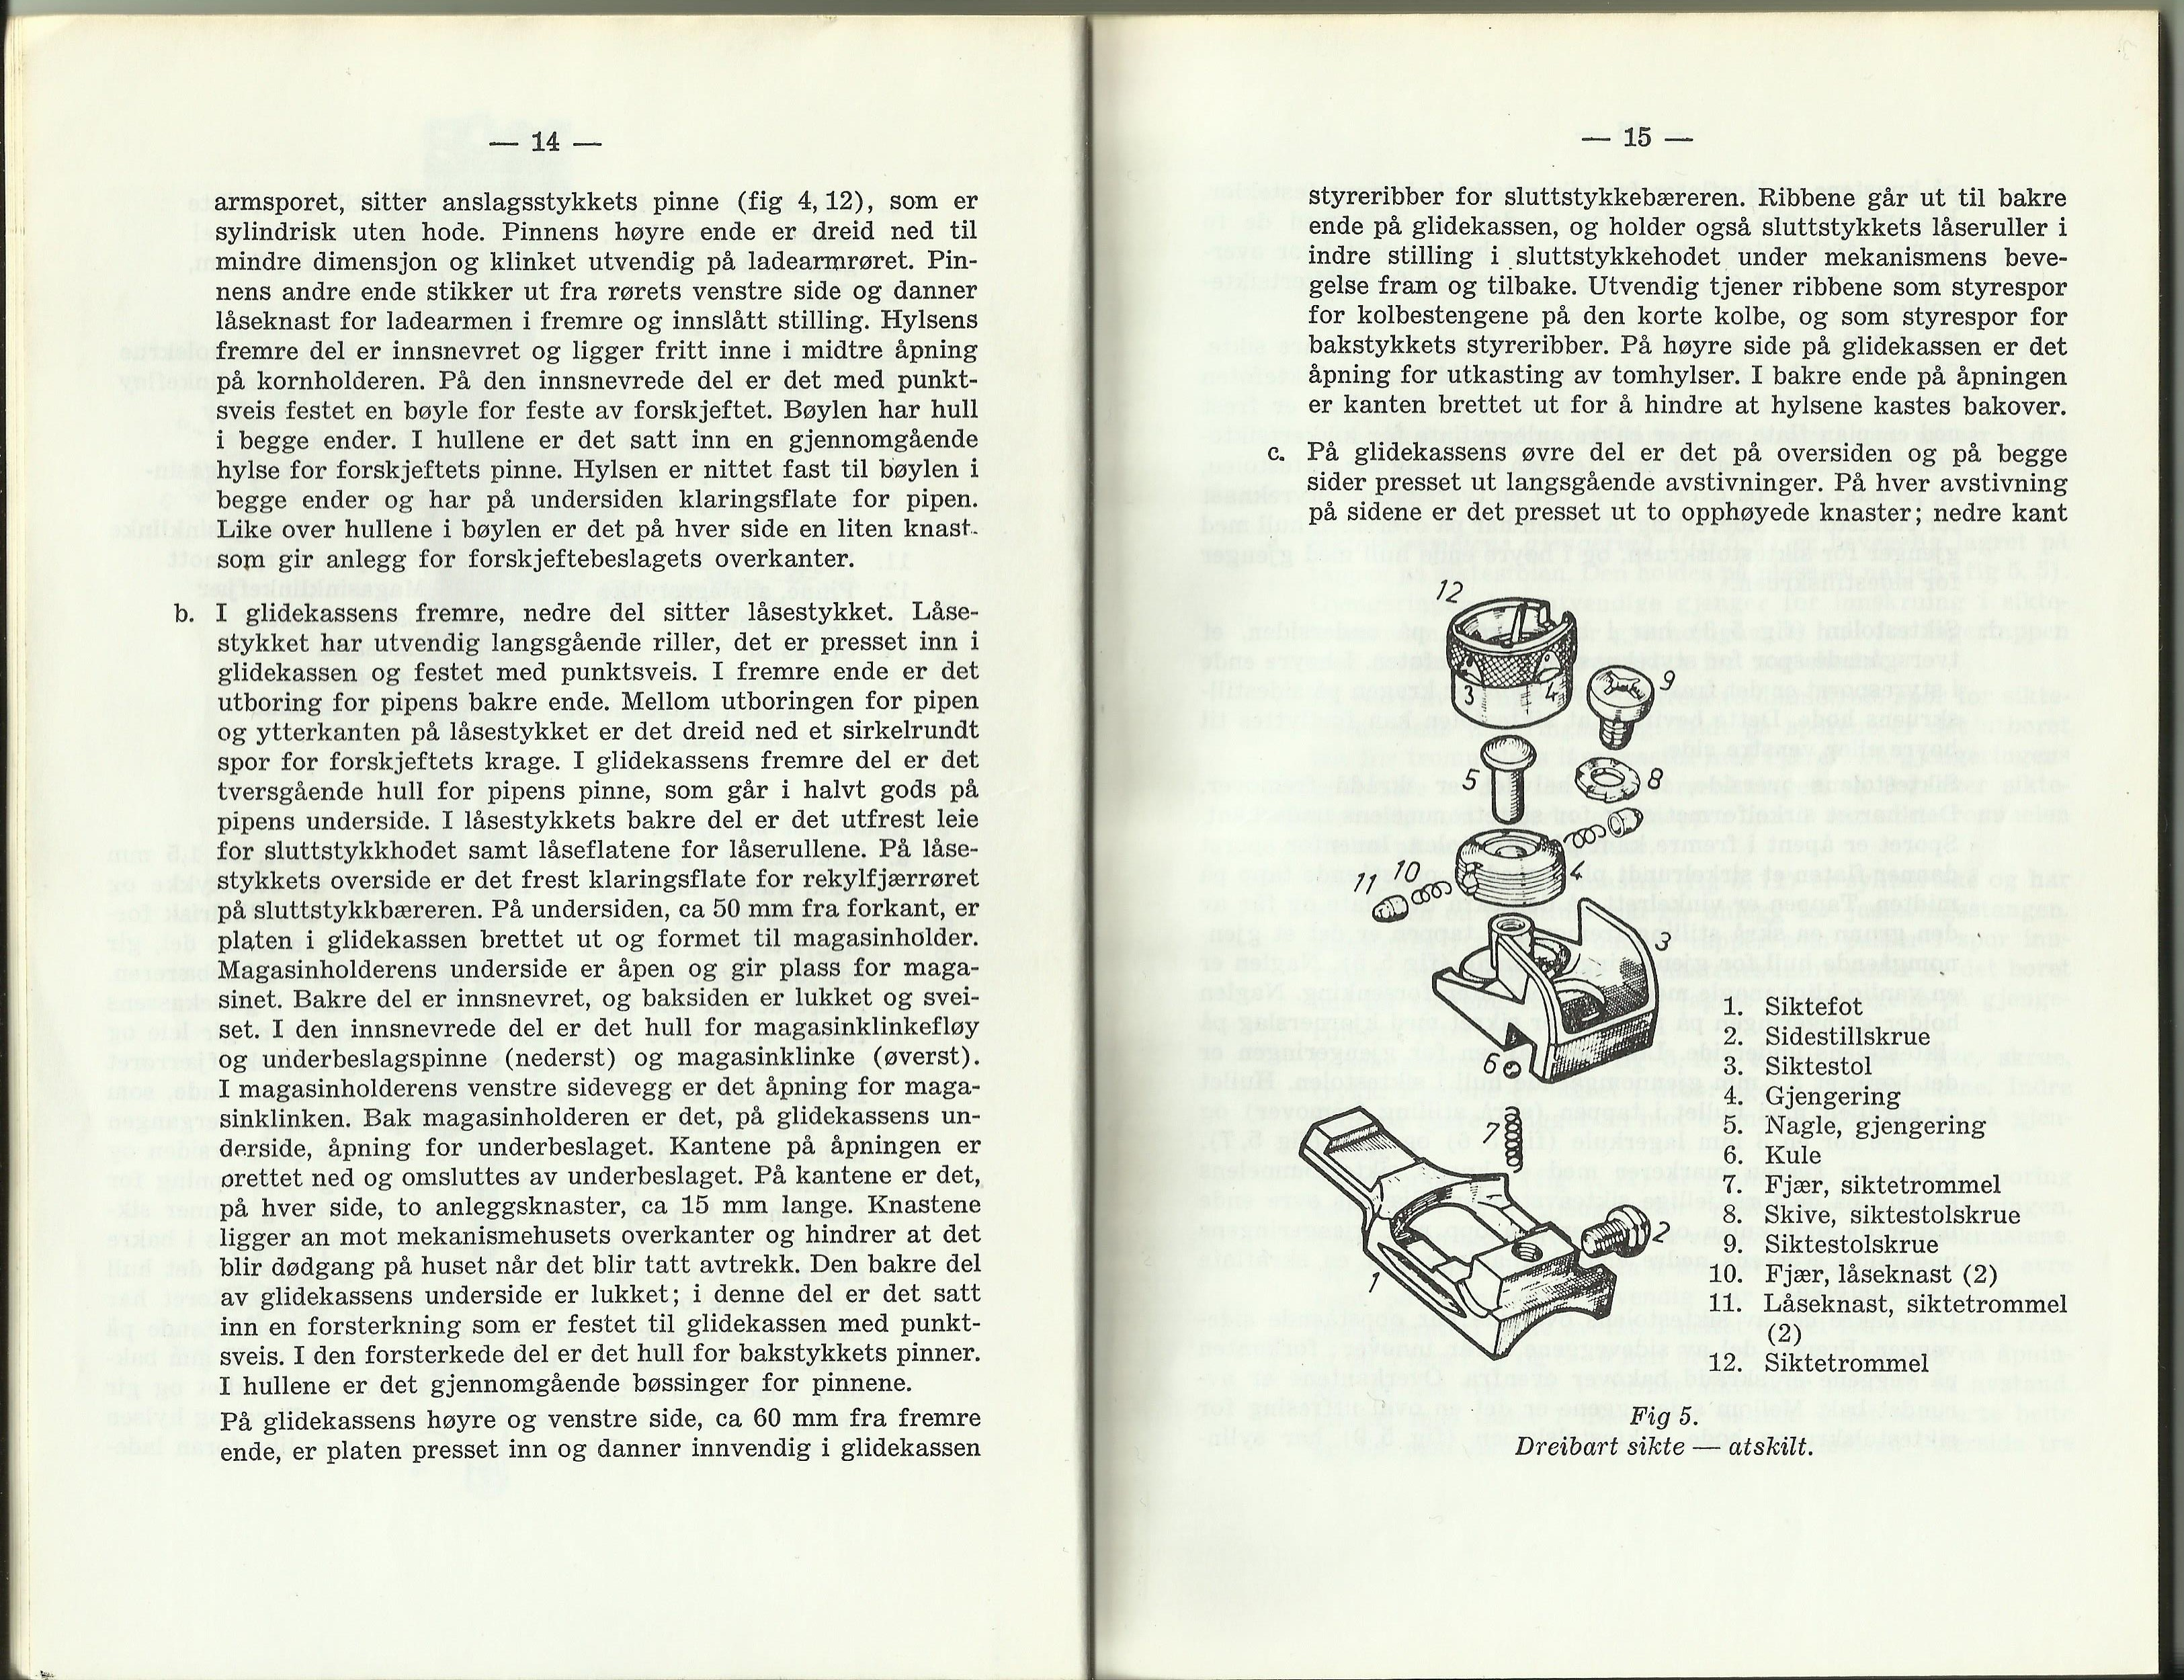 ./doc/reglement/AG3/AG3-TH-1968-6.jpg